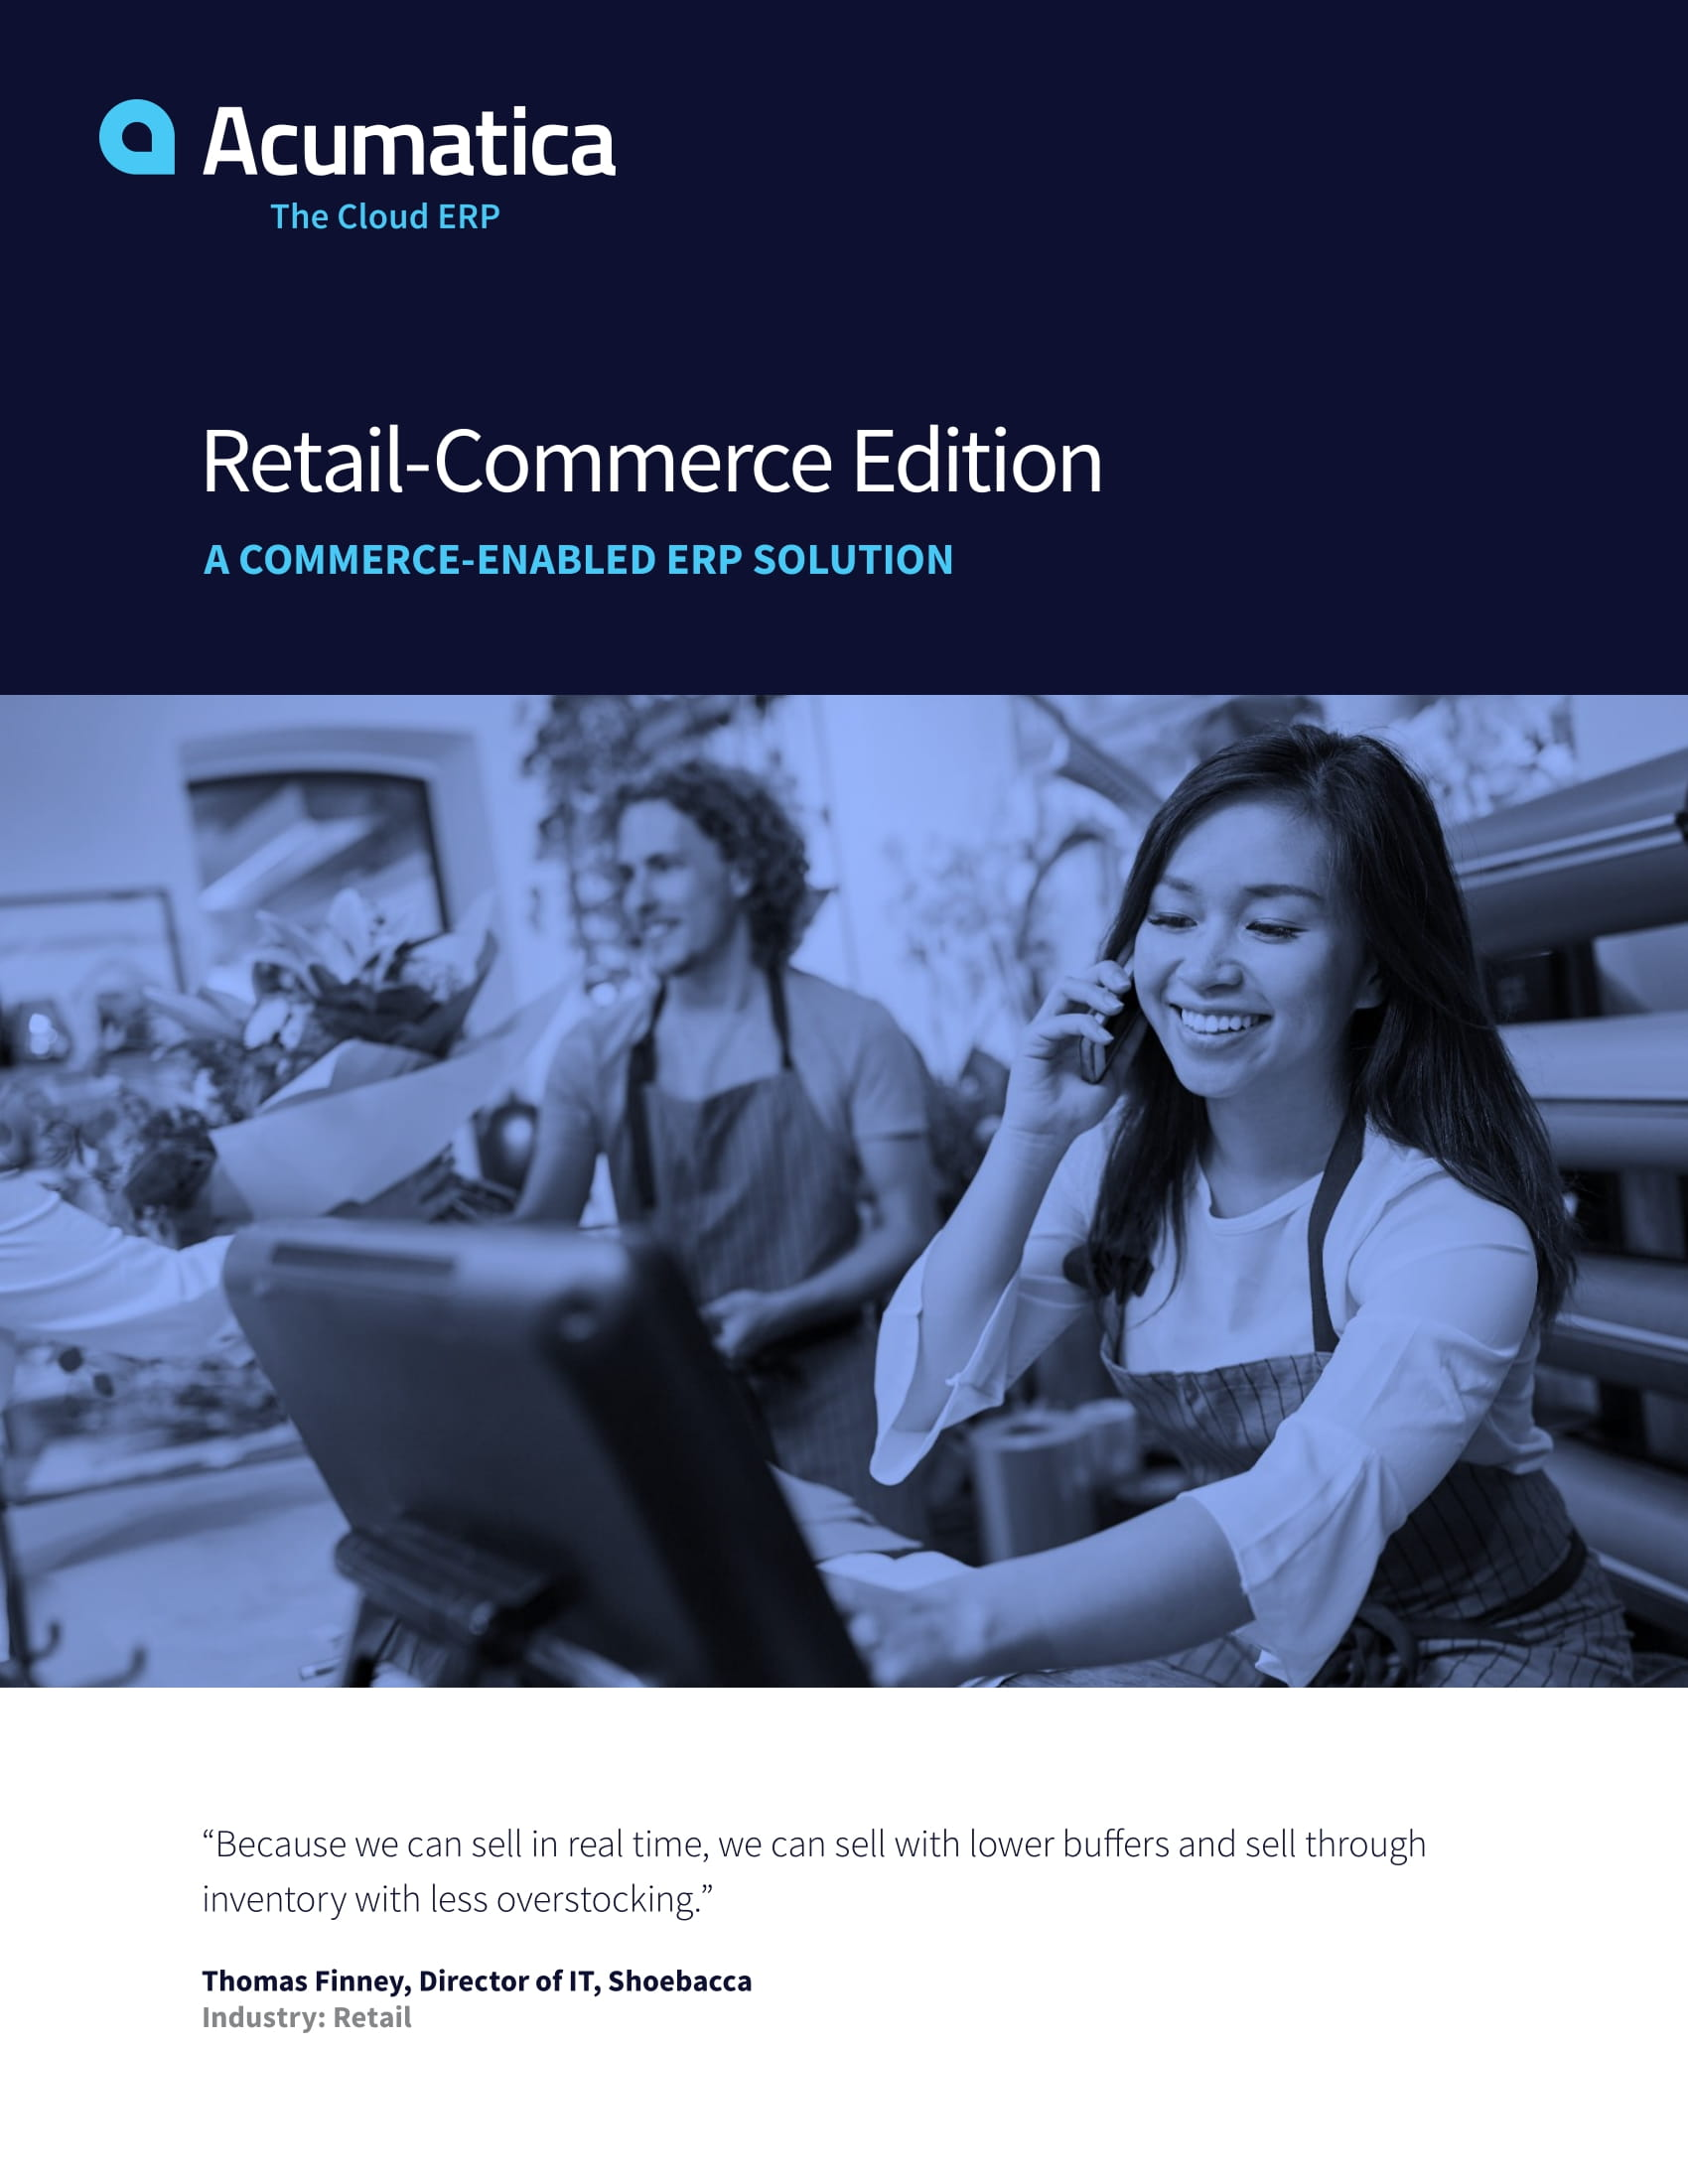 Choose an Commerce-Enabled ERP That Supports Your Whole Business